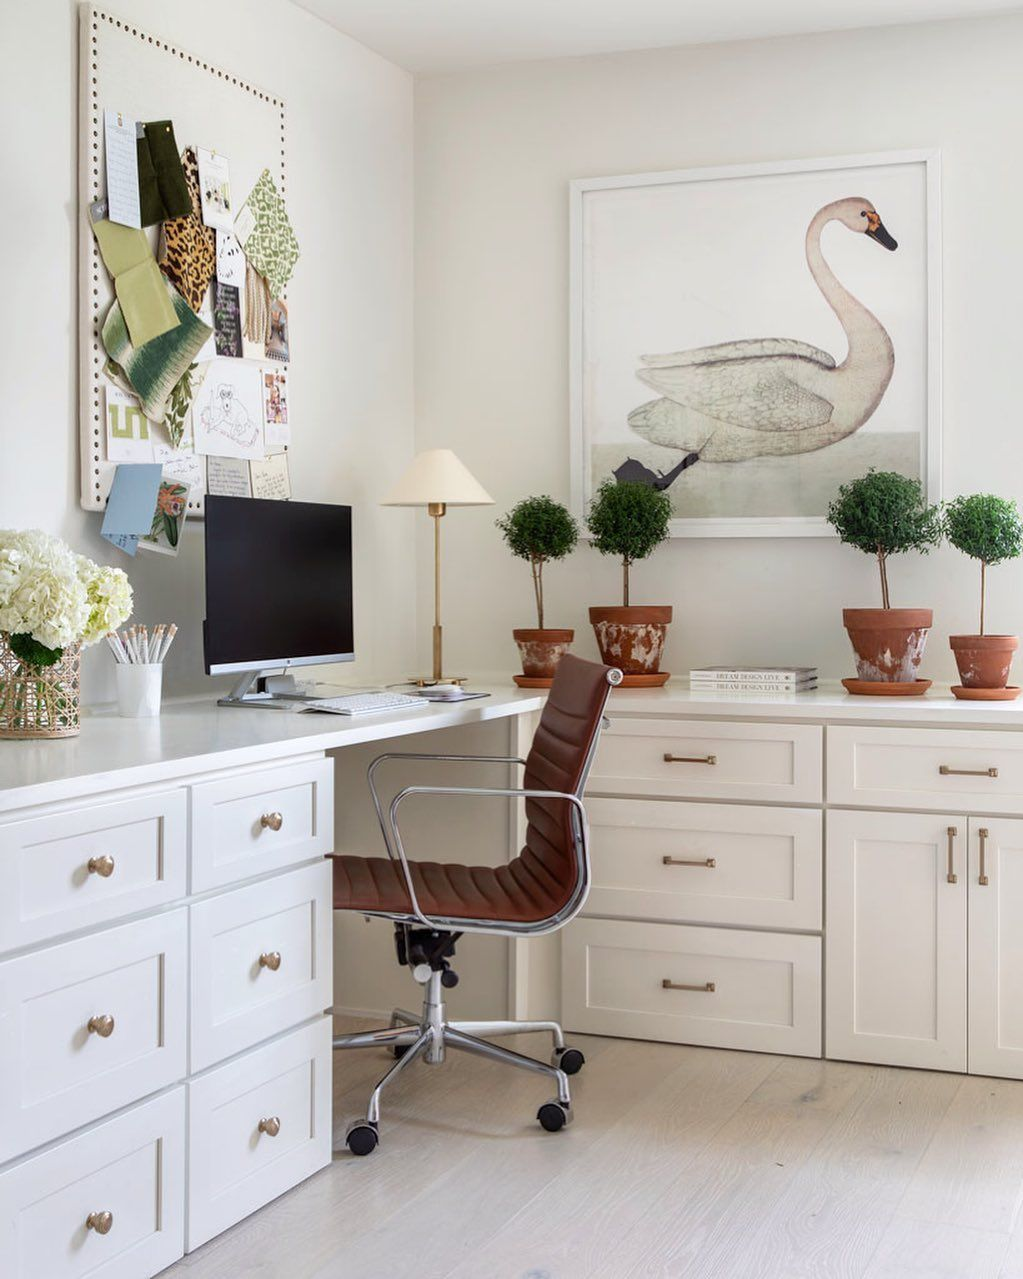 Pin By A Harris On House And Home In 2020 Decor Home Decor Design